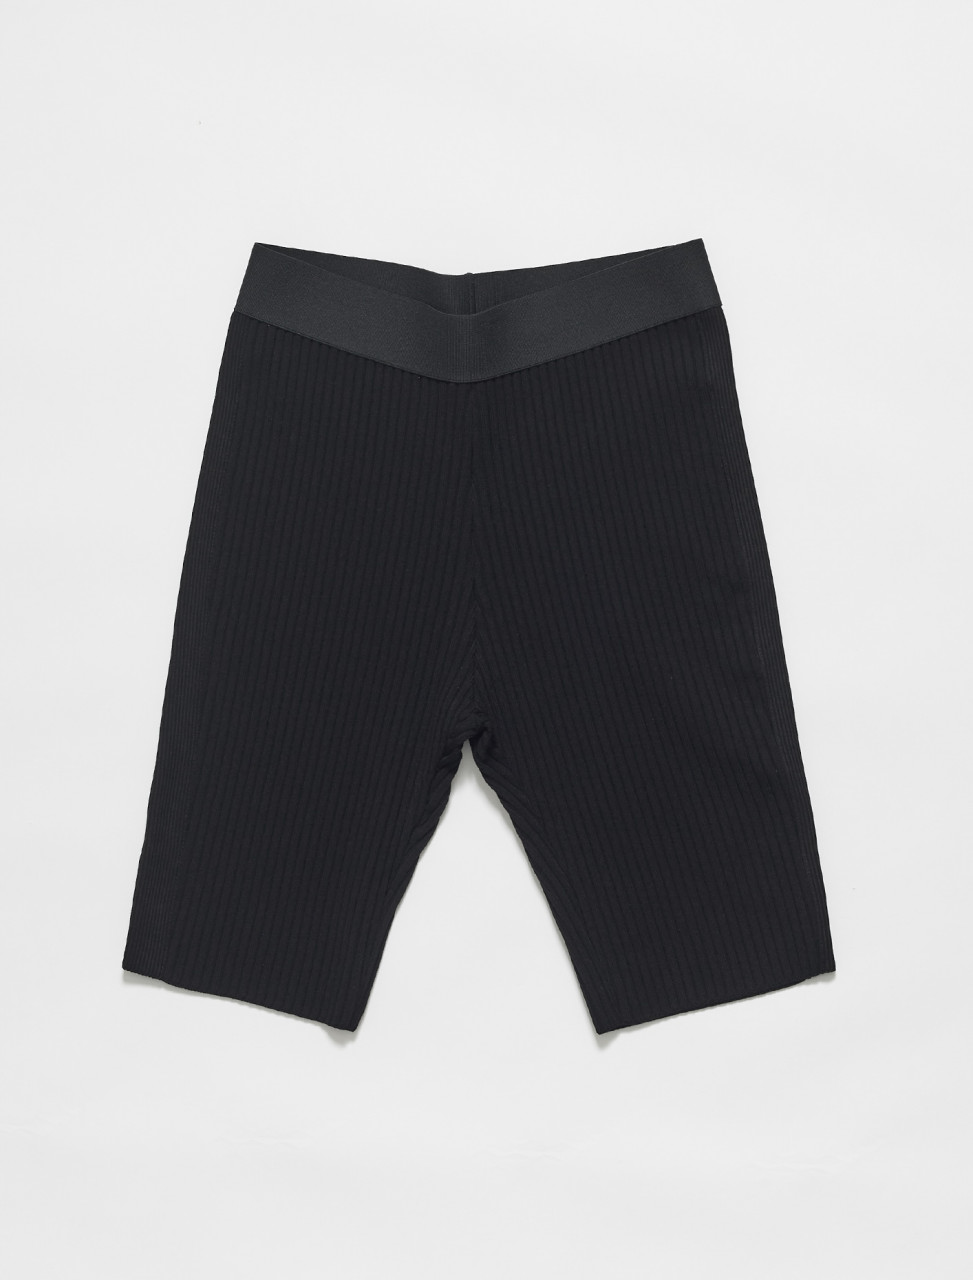 211-21202-2700-900 DRIES VAN NOTEN NADIM RIBBED BIKE SHORTS IN BLACK